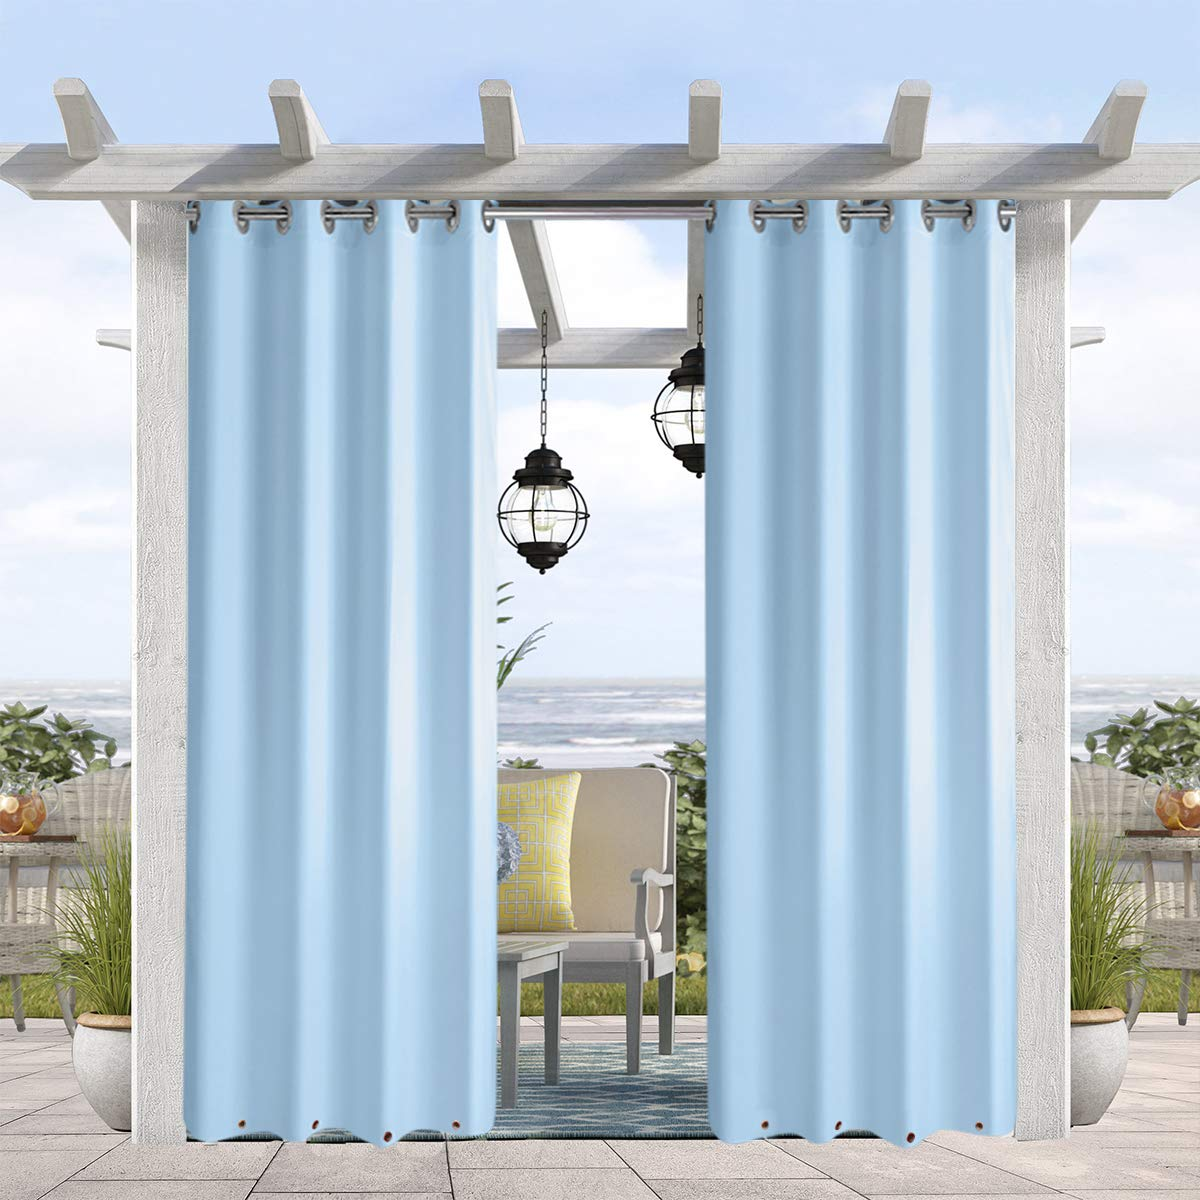 Pro Space Outdoor Drape and Curtain 50x96-Inch for Pergola Thermal Insulated Blackout Curtain Panel with Rust Proof Rings on Top and Bottom, Windproof and Mildew Resistant,Blue